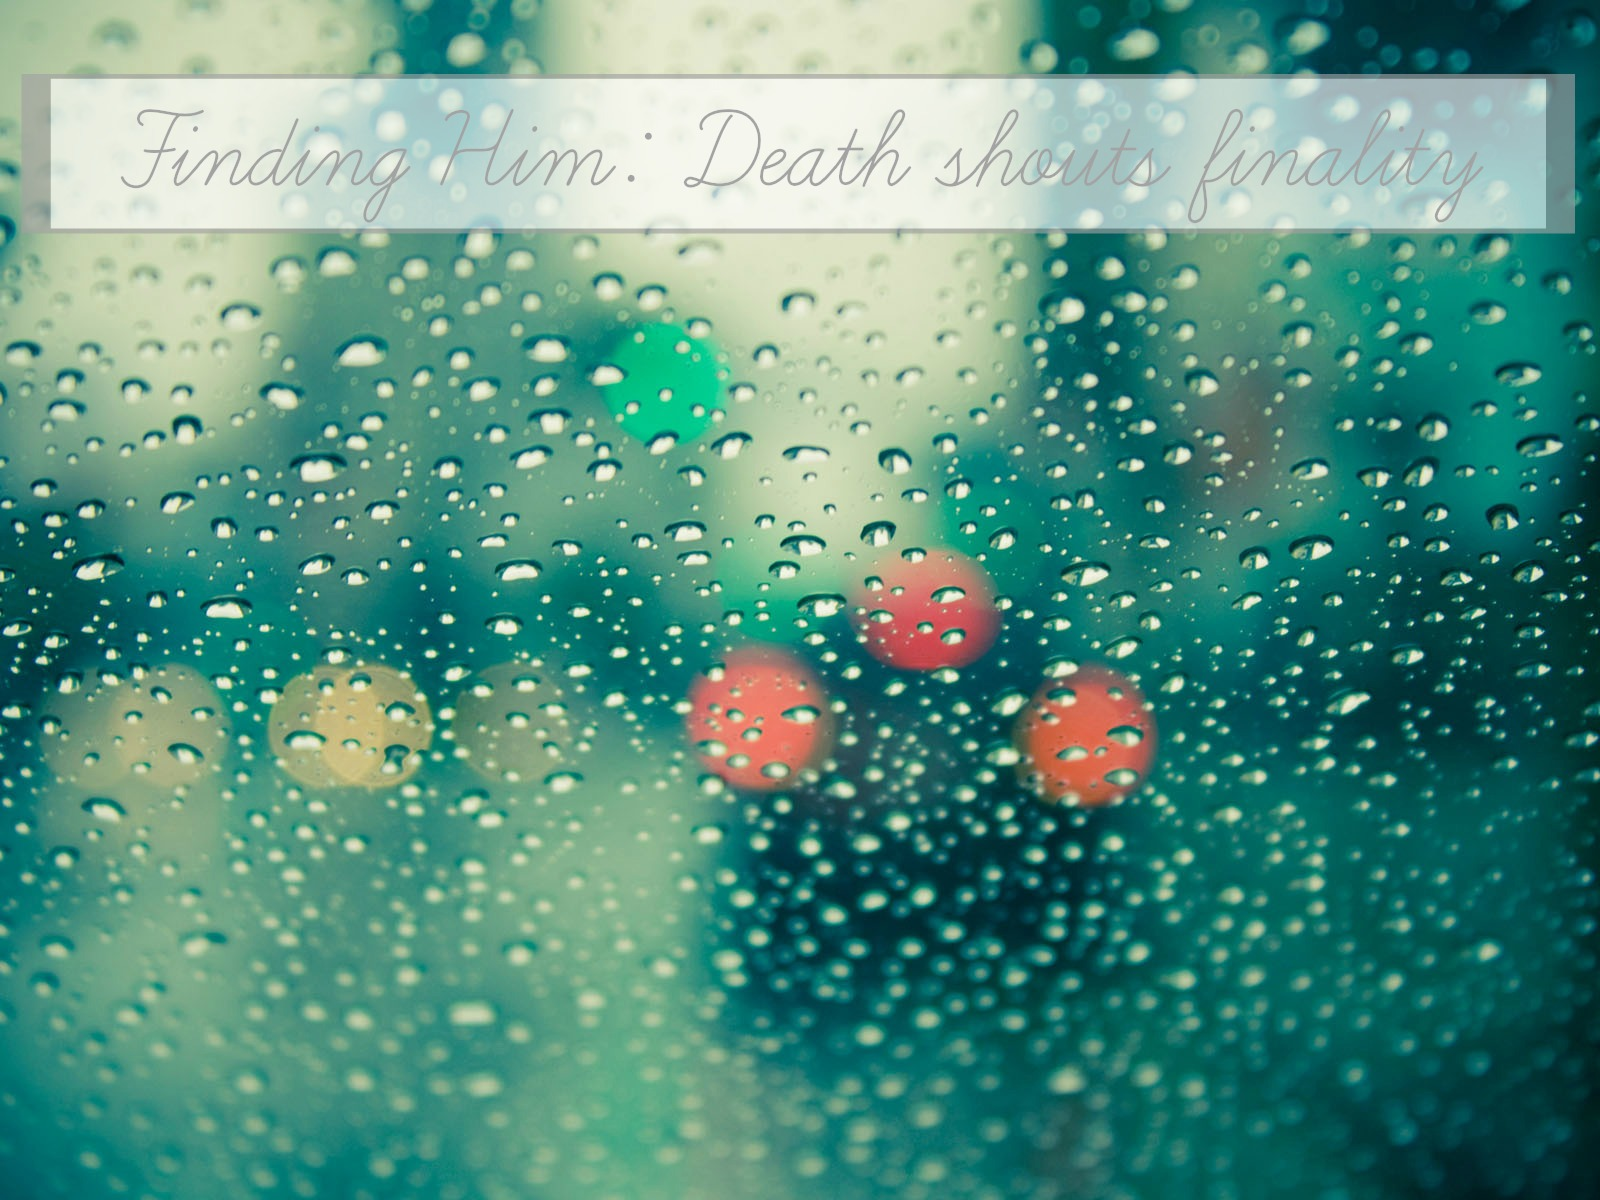 death-losing someone you love